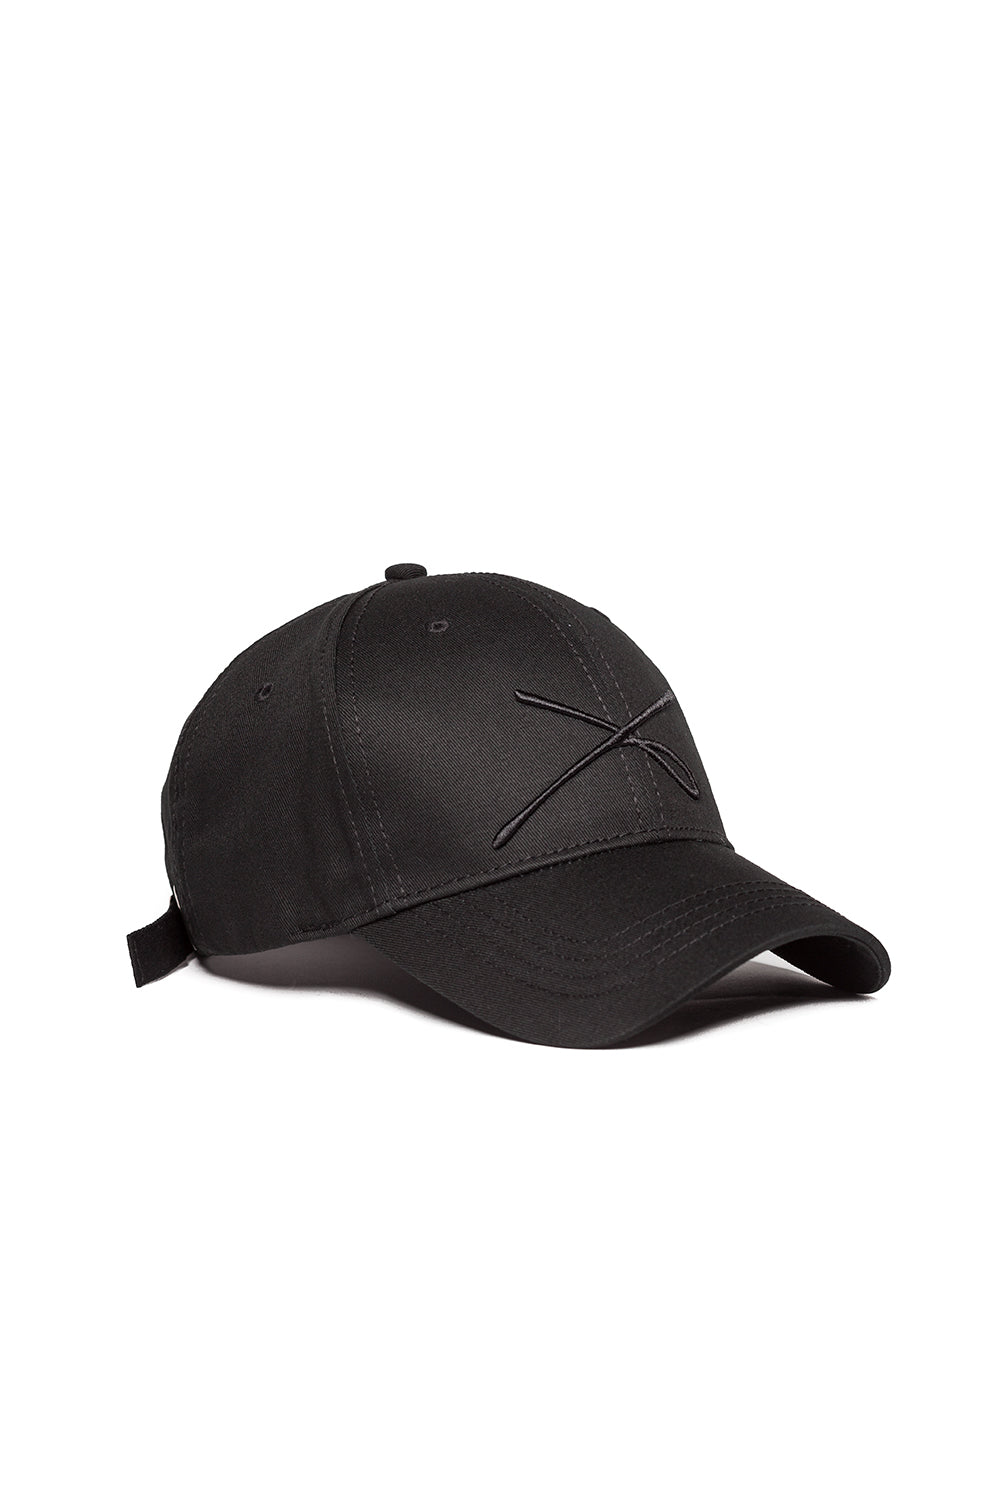 X SHADOW HAT